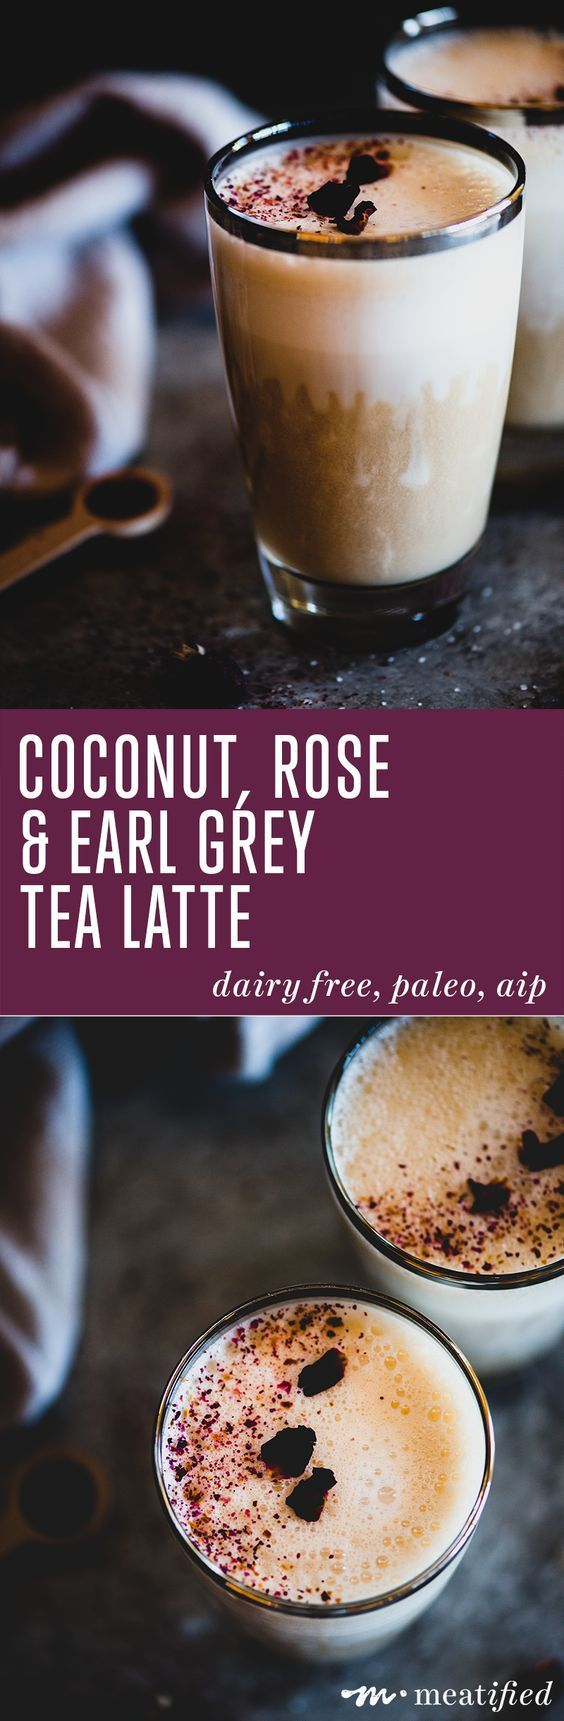 Paleo Vegan Coconut, Rose & Earl Grey Tea Latte | Meatified